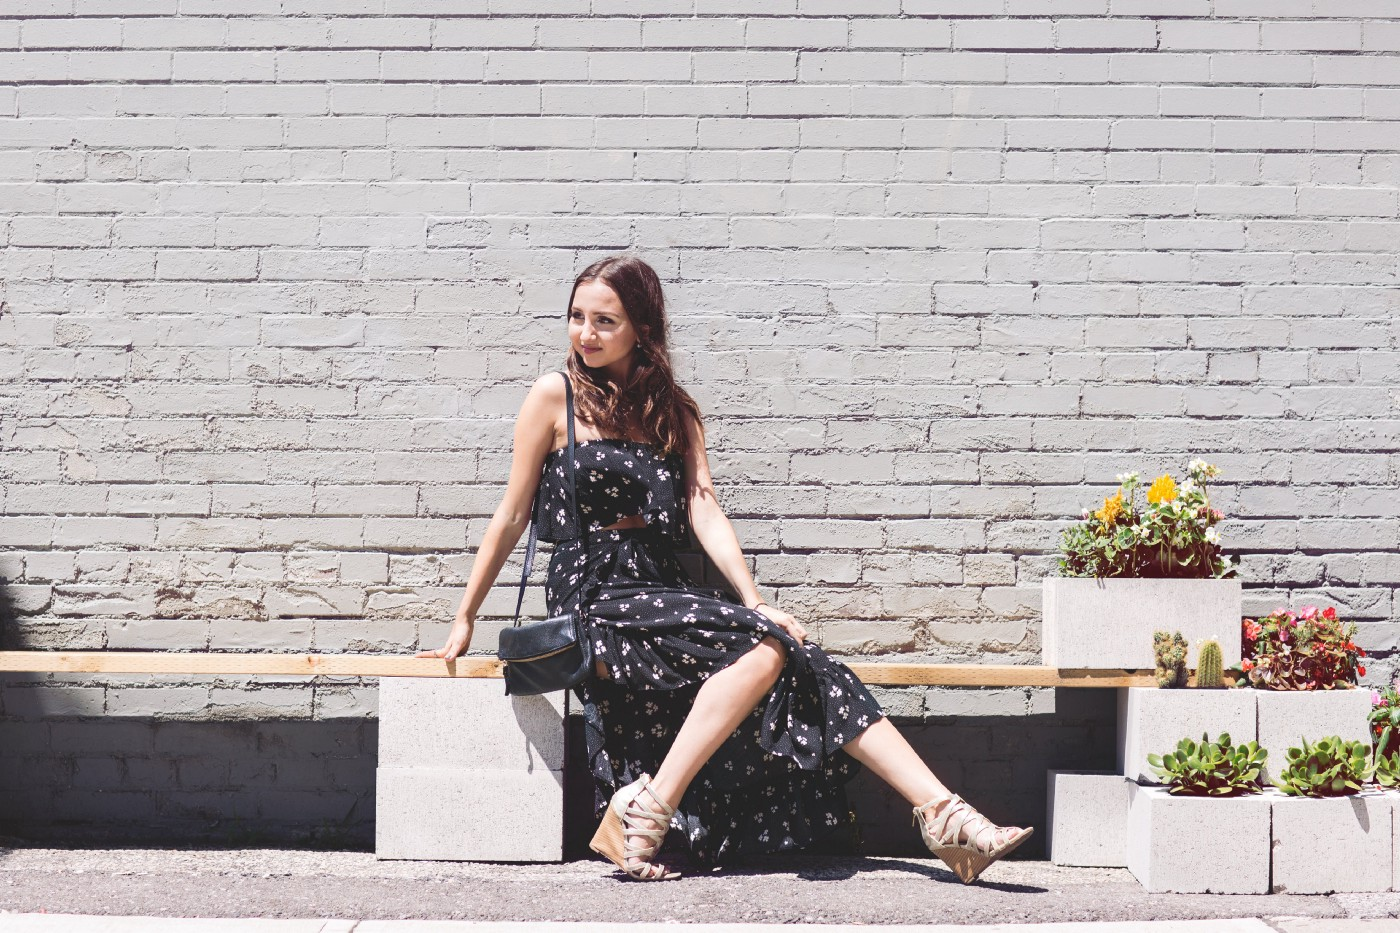 A woman in a floral dress smiles while sitting on a bench.